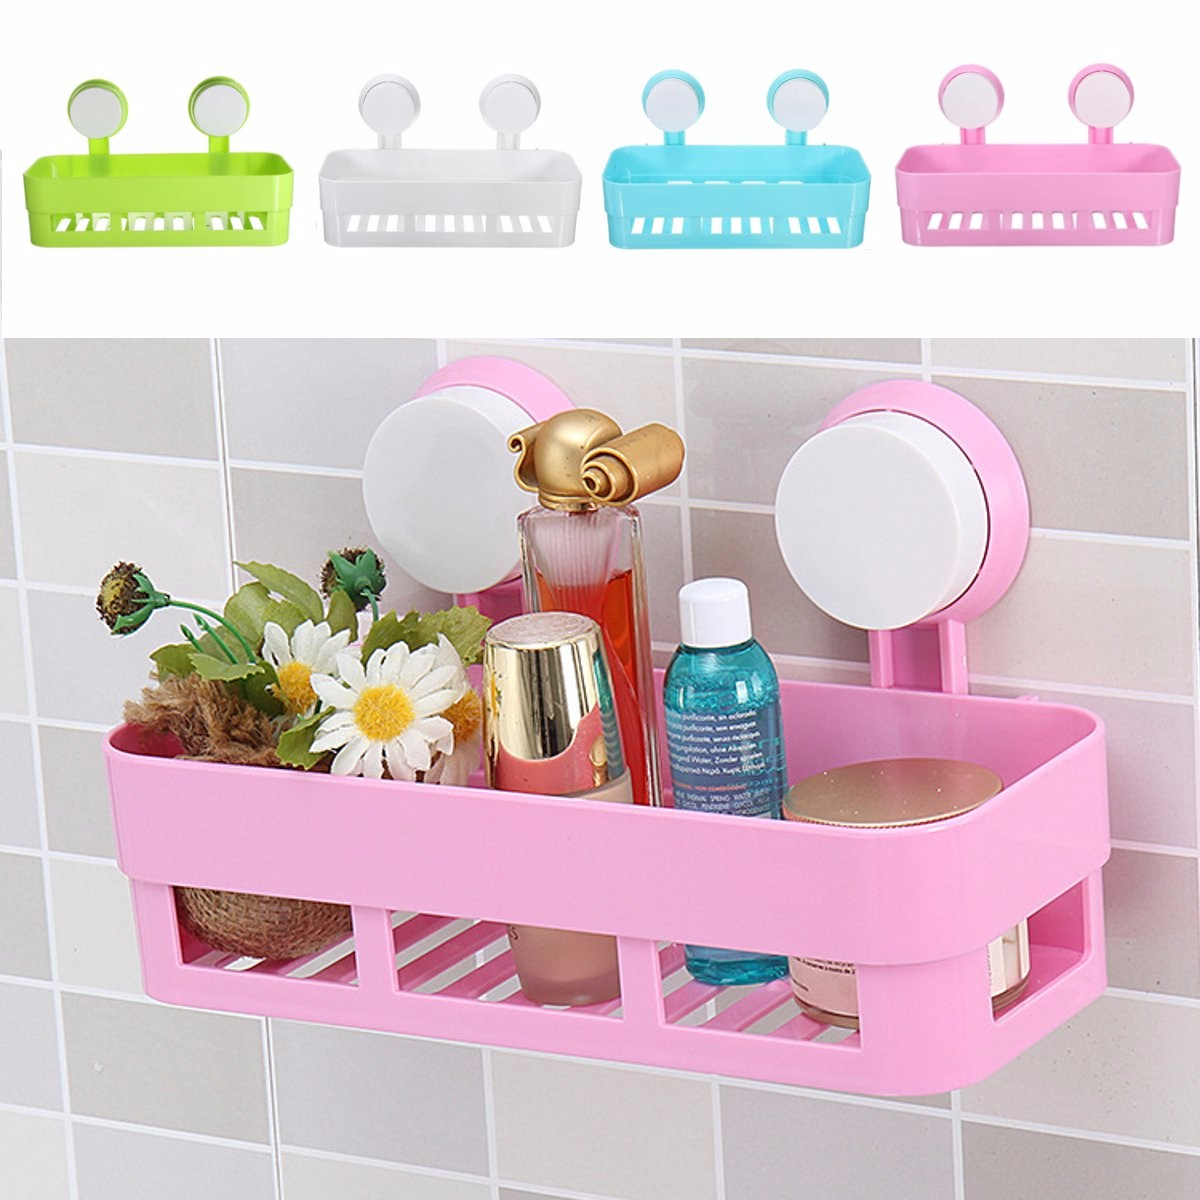 panier tag re support mural ventouse organiseur rangement pour salle de bain ebay. Black Bedroom Furniture Sets. Home Design Ideas